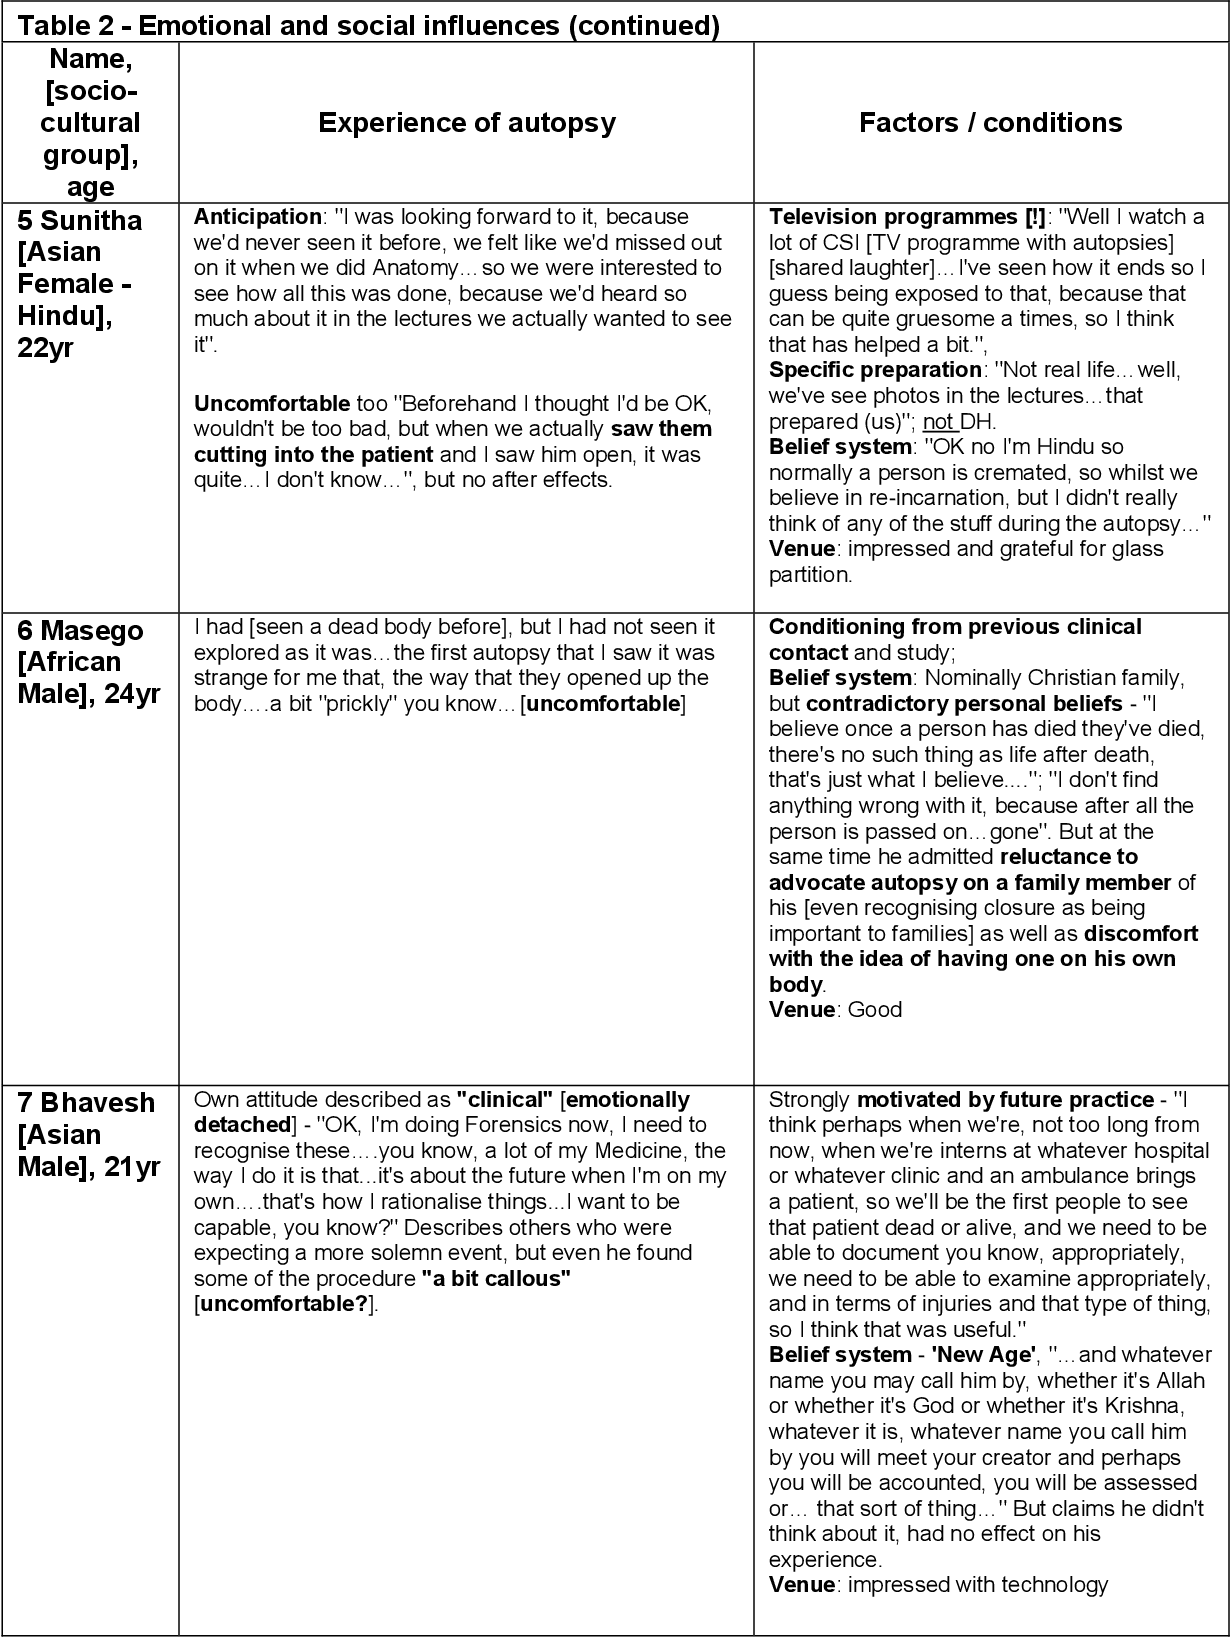 Table 2 from Students' perceptions of medico-legal autopsy